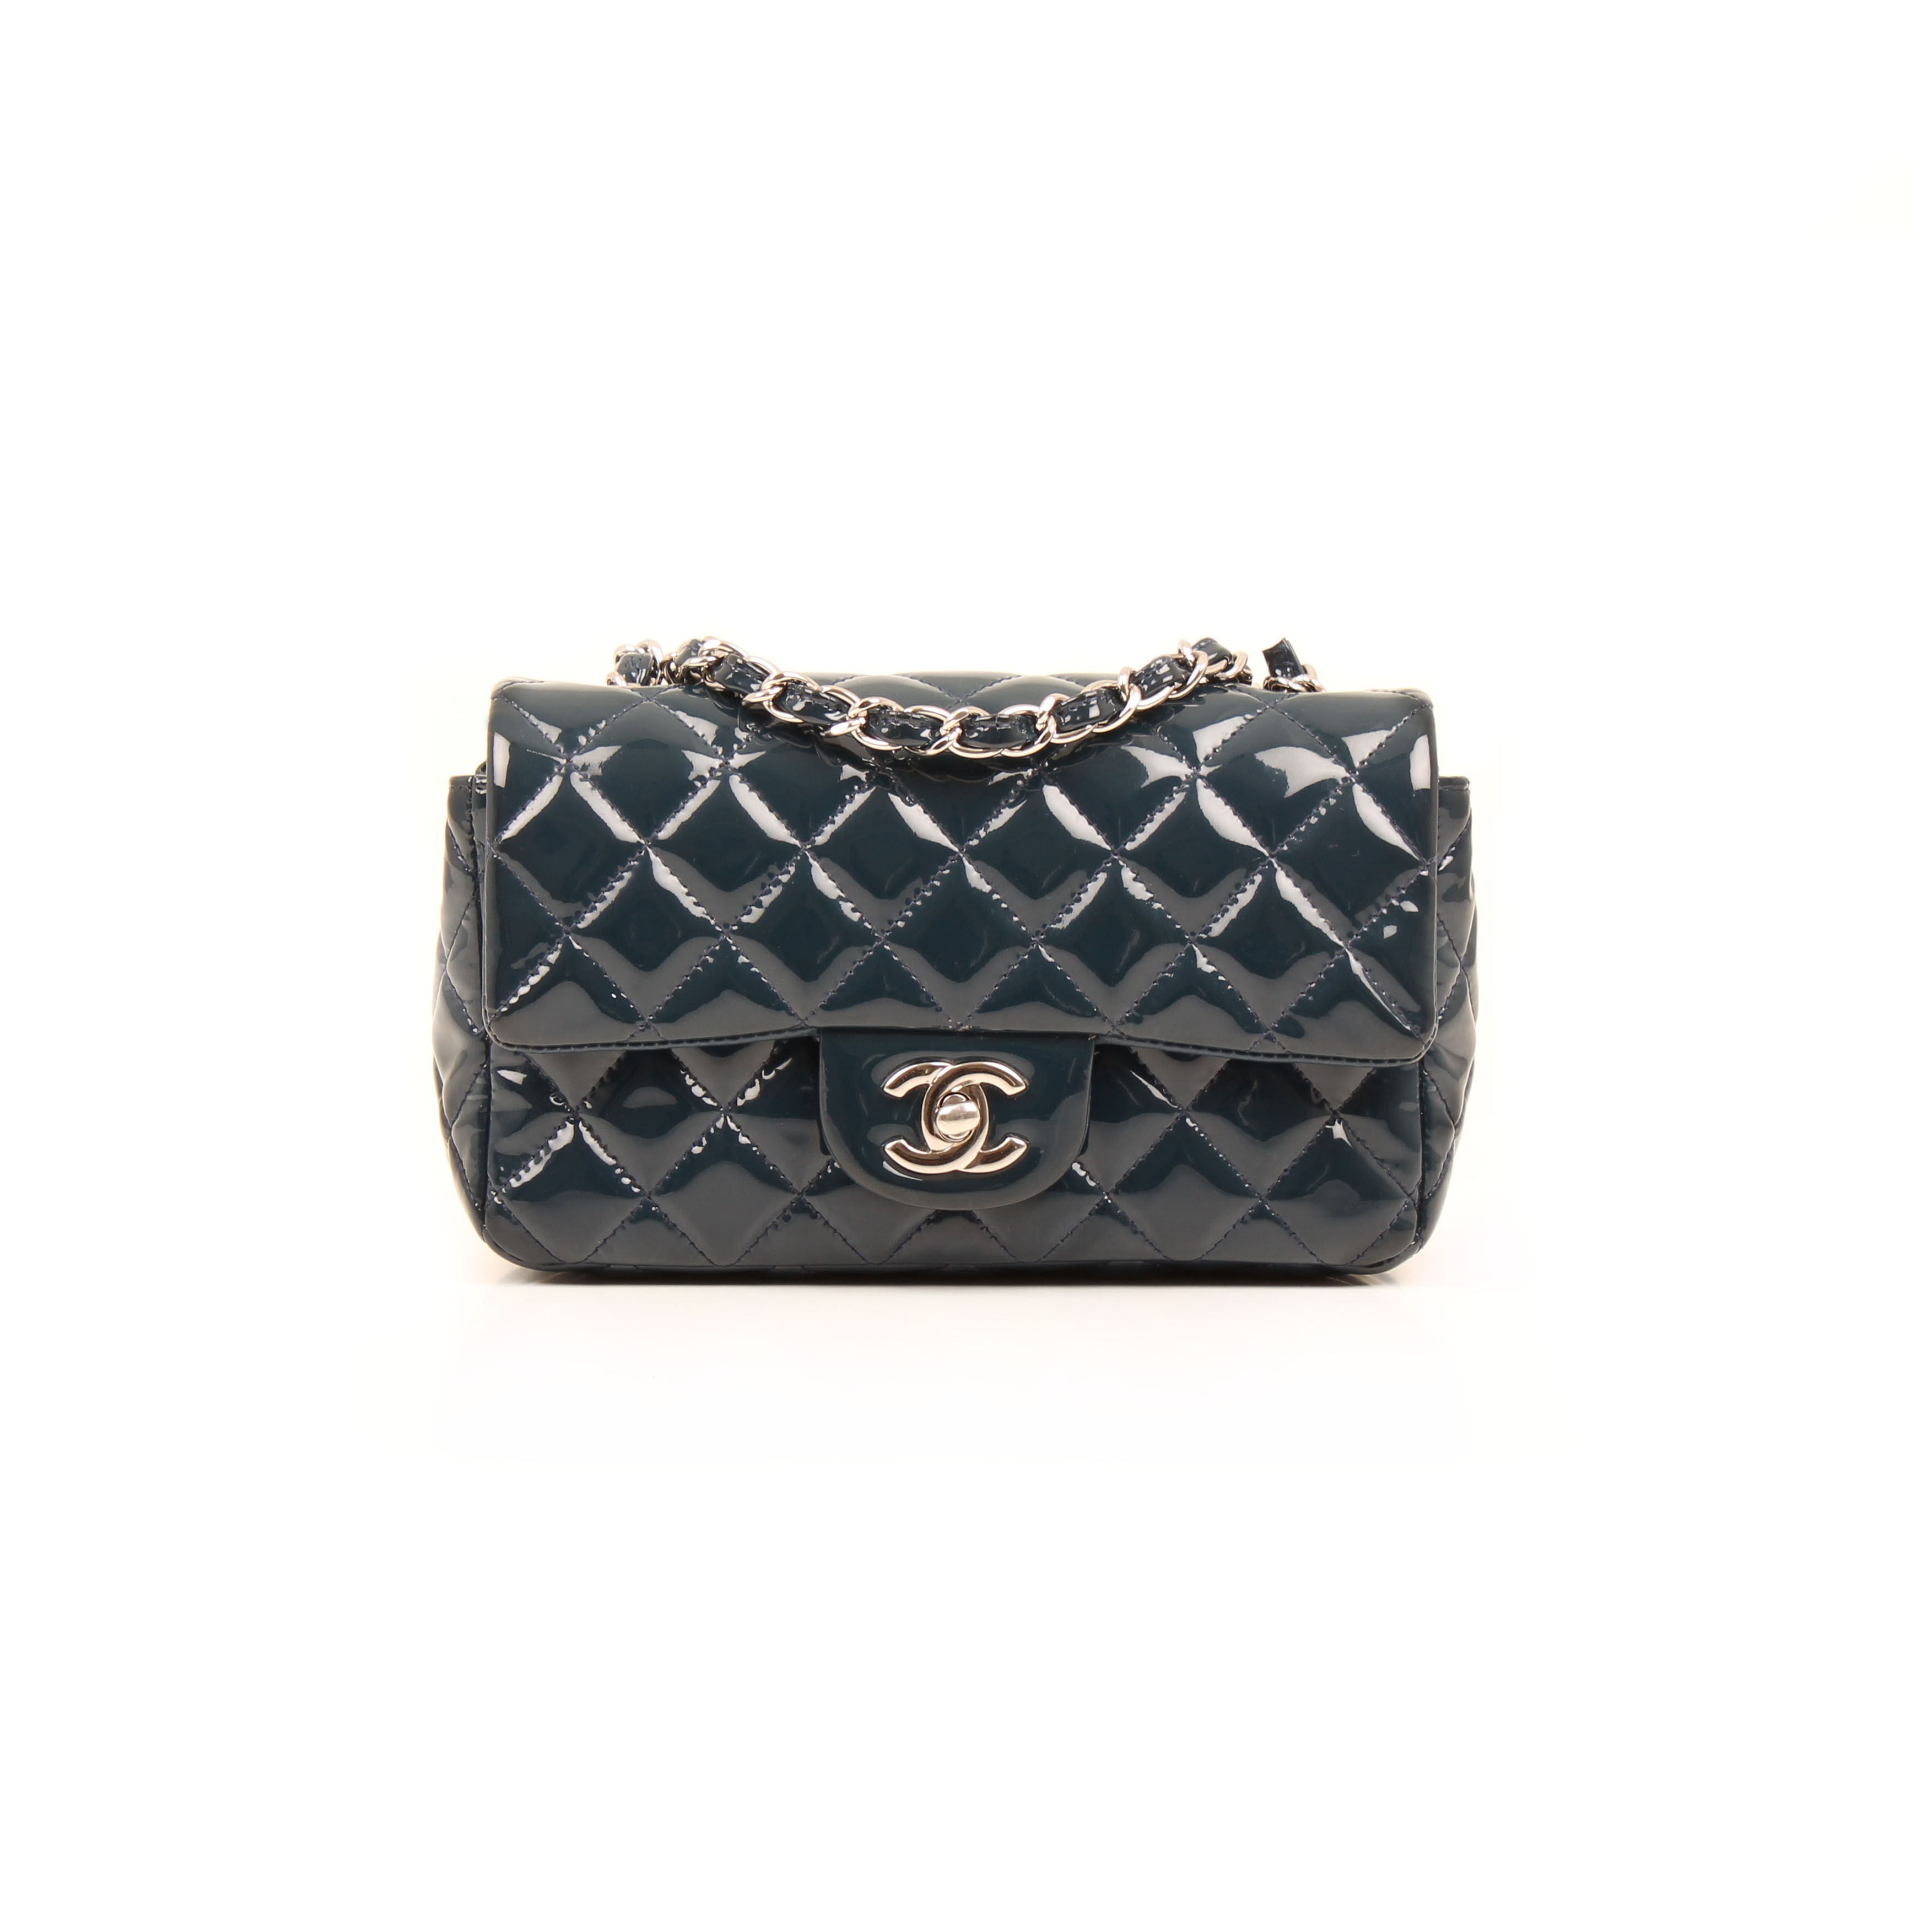 Imagen frontal del bolso chanel classic mini rectangular timeless charol azul